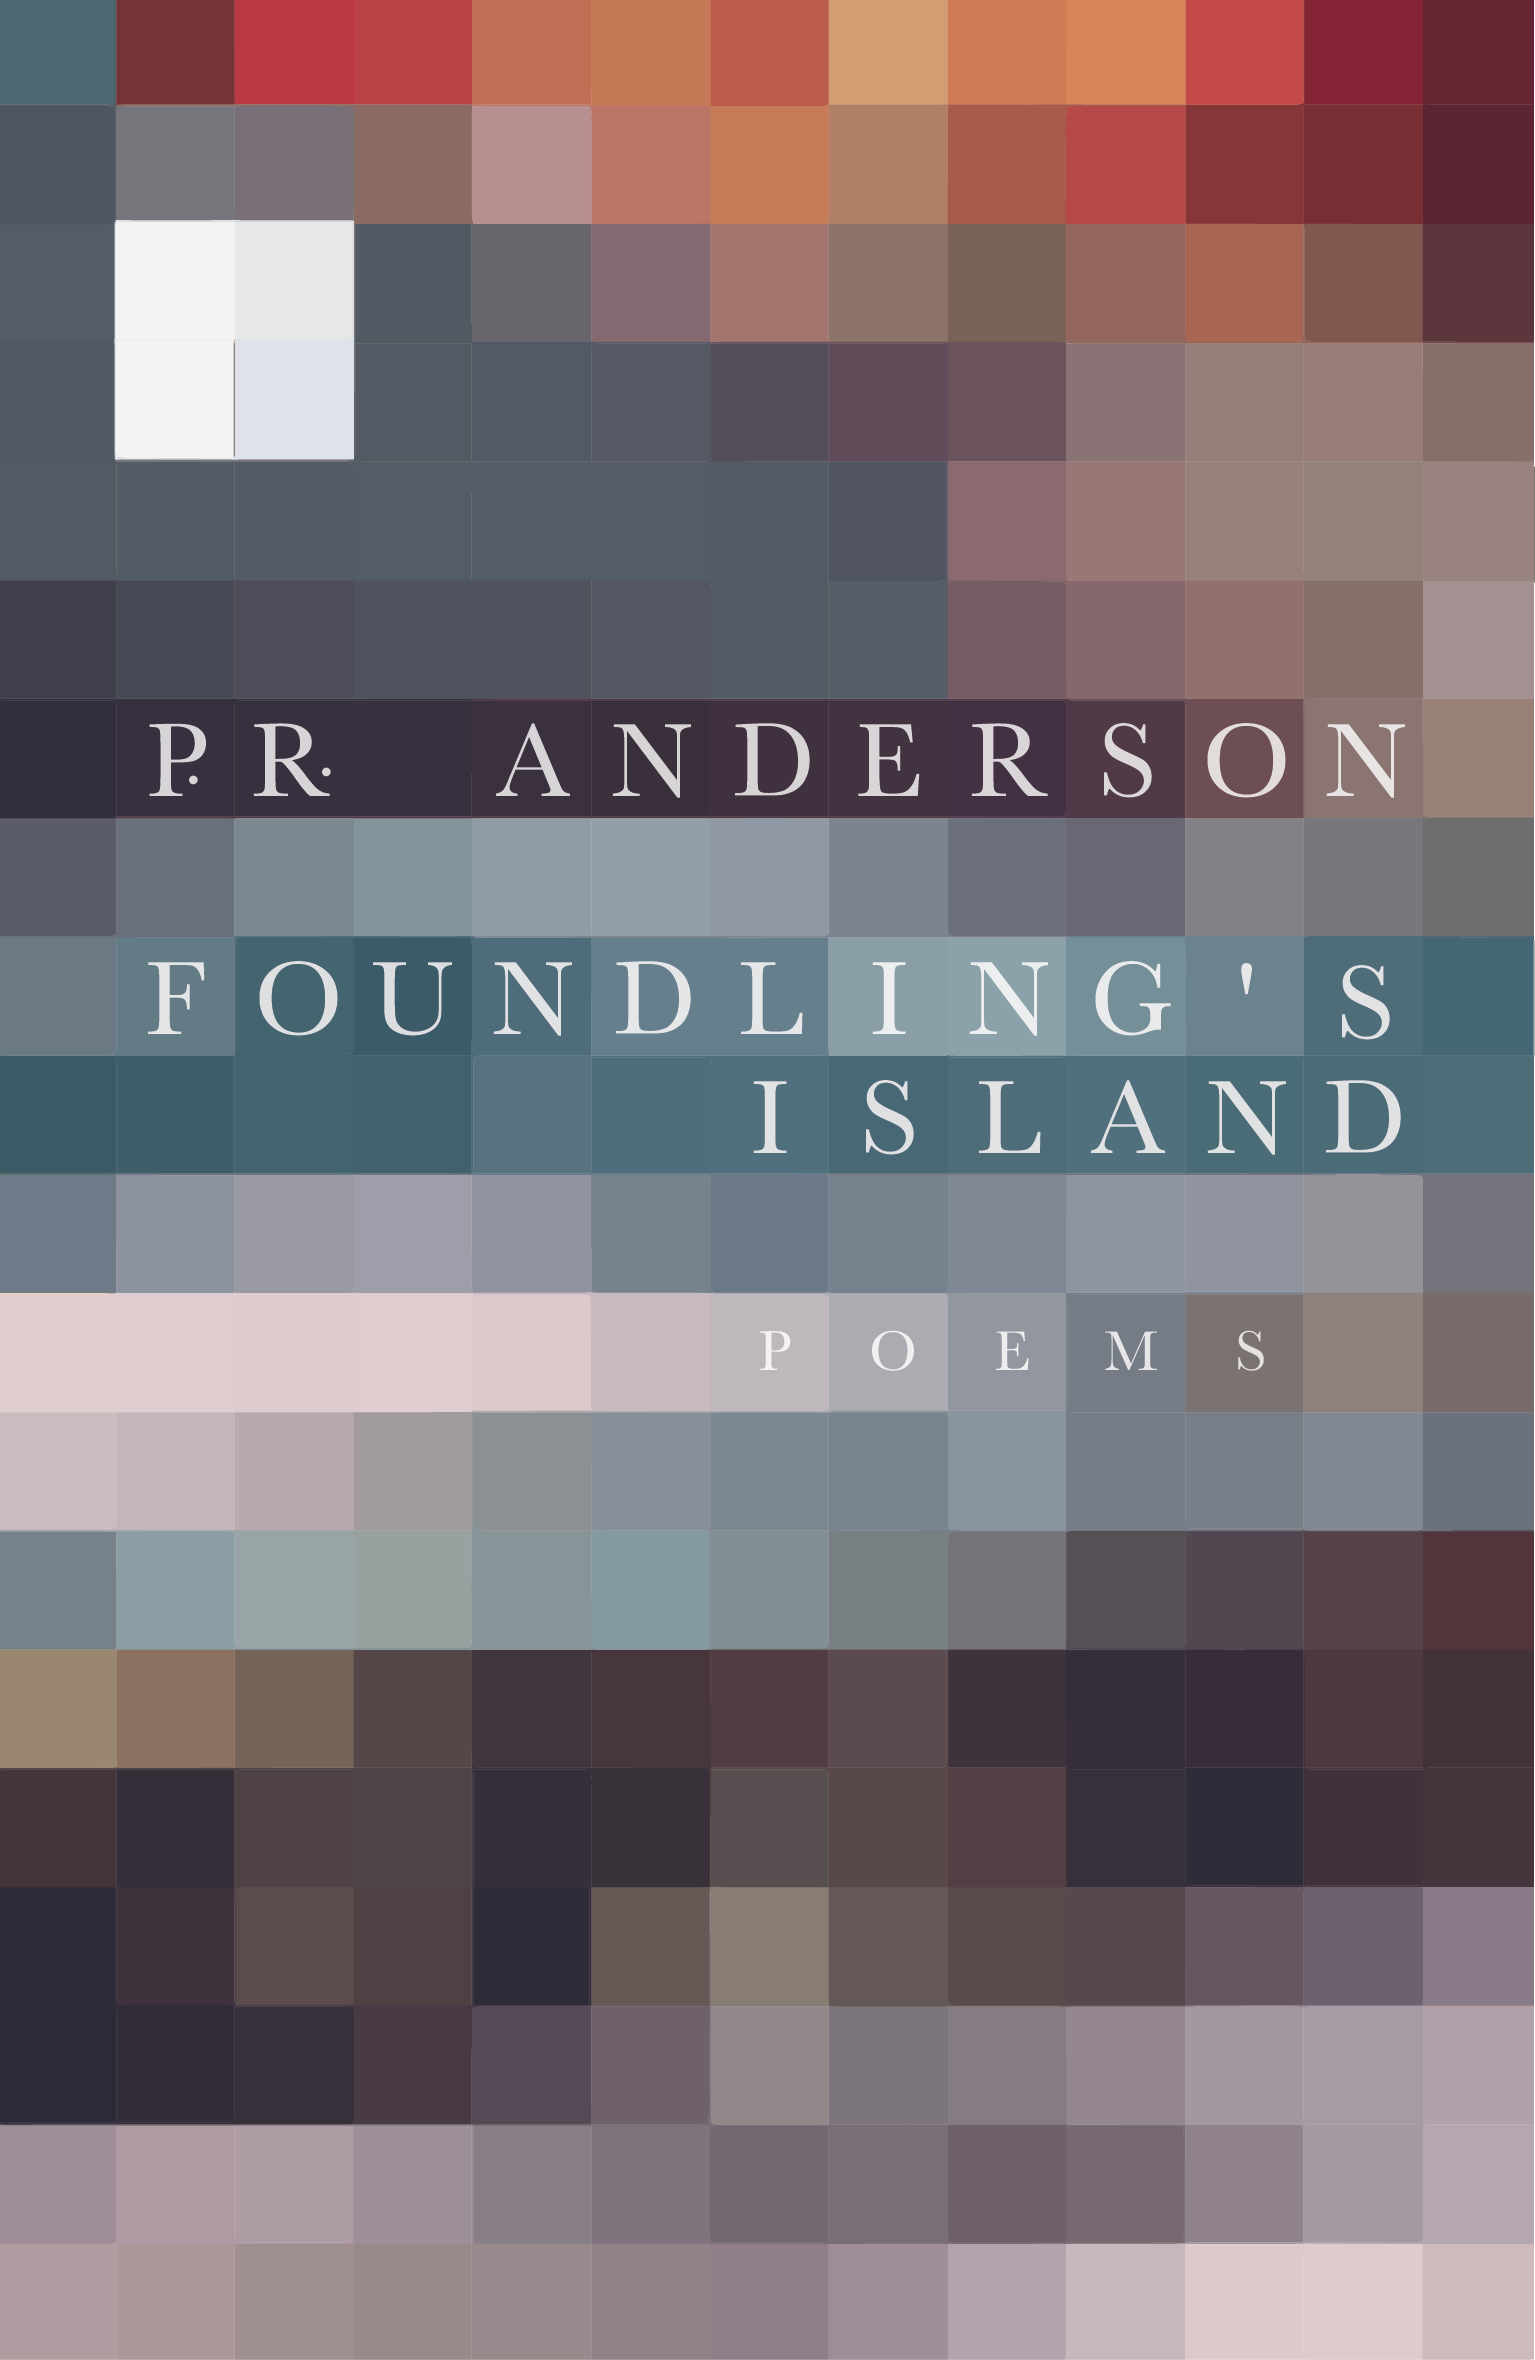 anderson_foundlings-island_cover.png